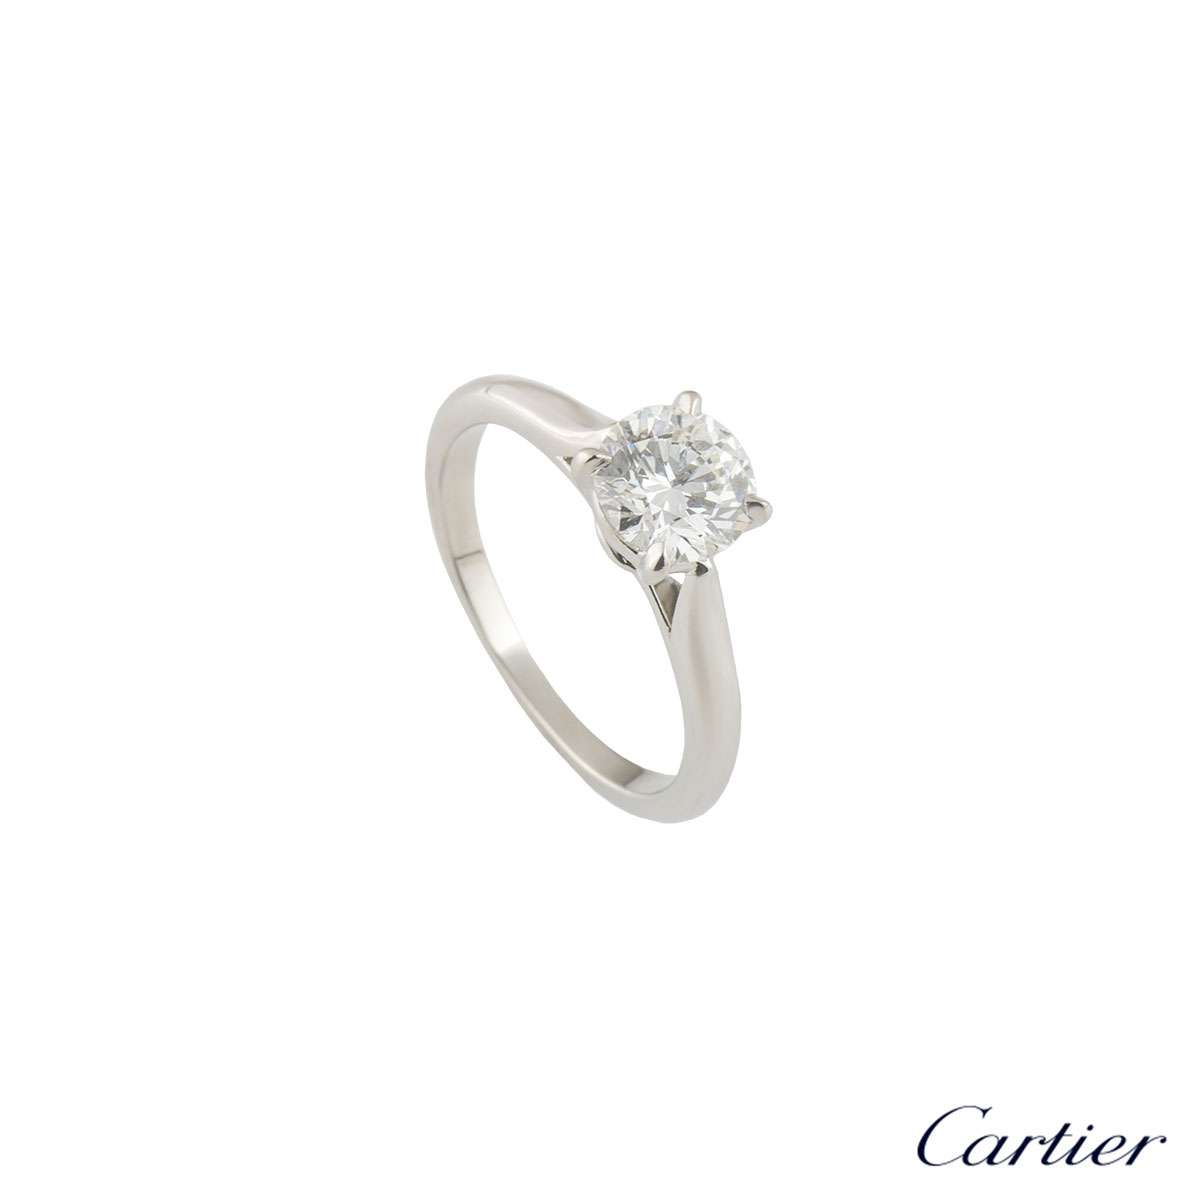 Cartier Solitaire 1895 Diamond Ring 1.08ct H/VS1